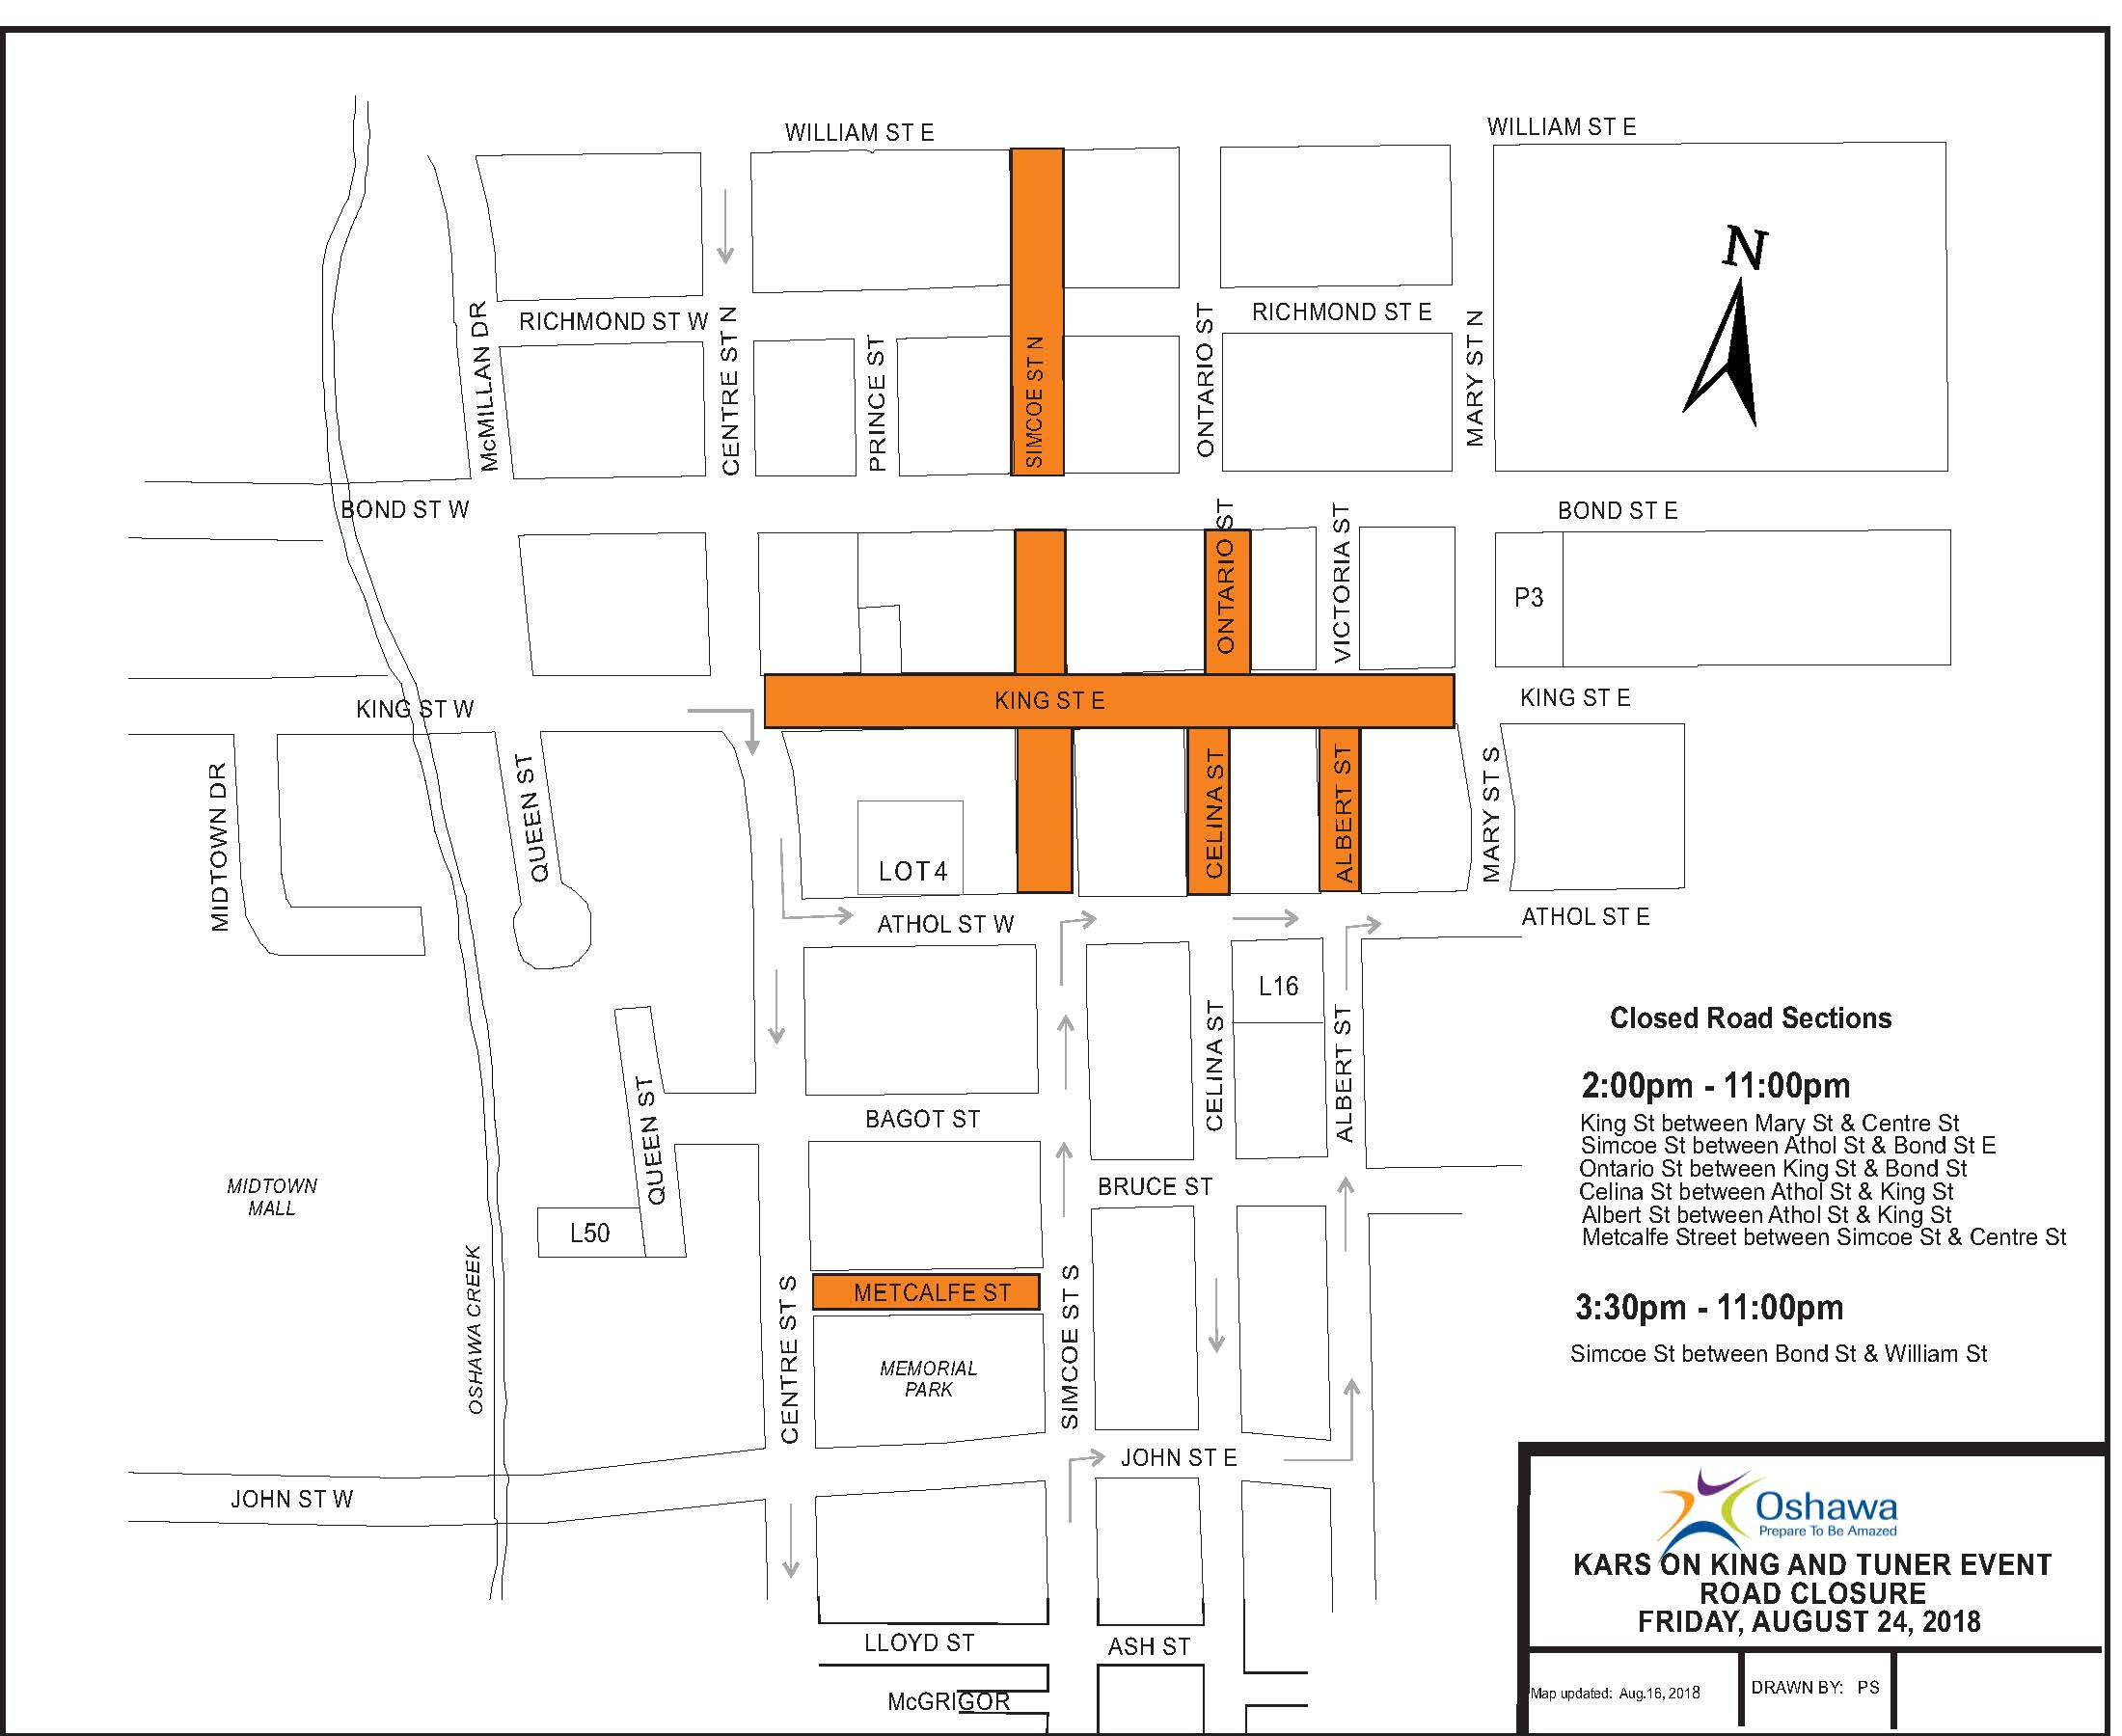 Kars on King and Tuner Event Road Closure Map